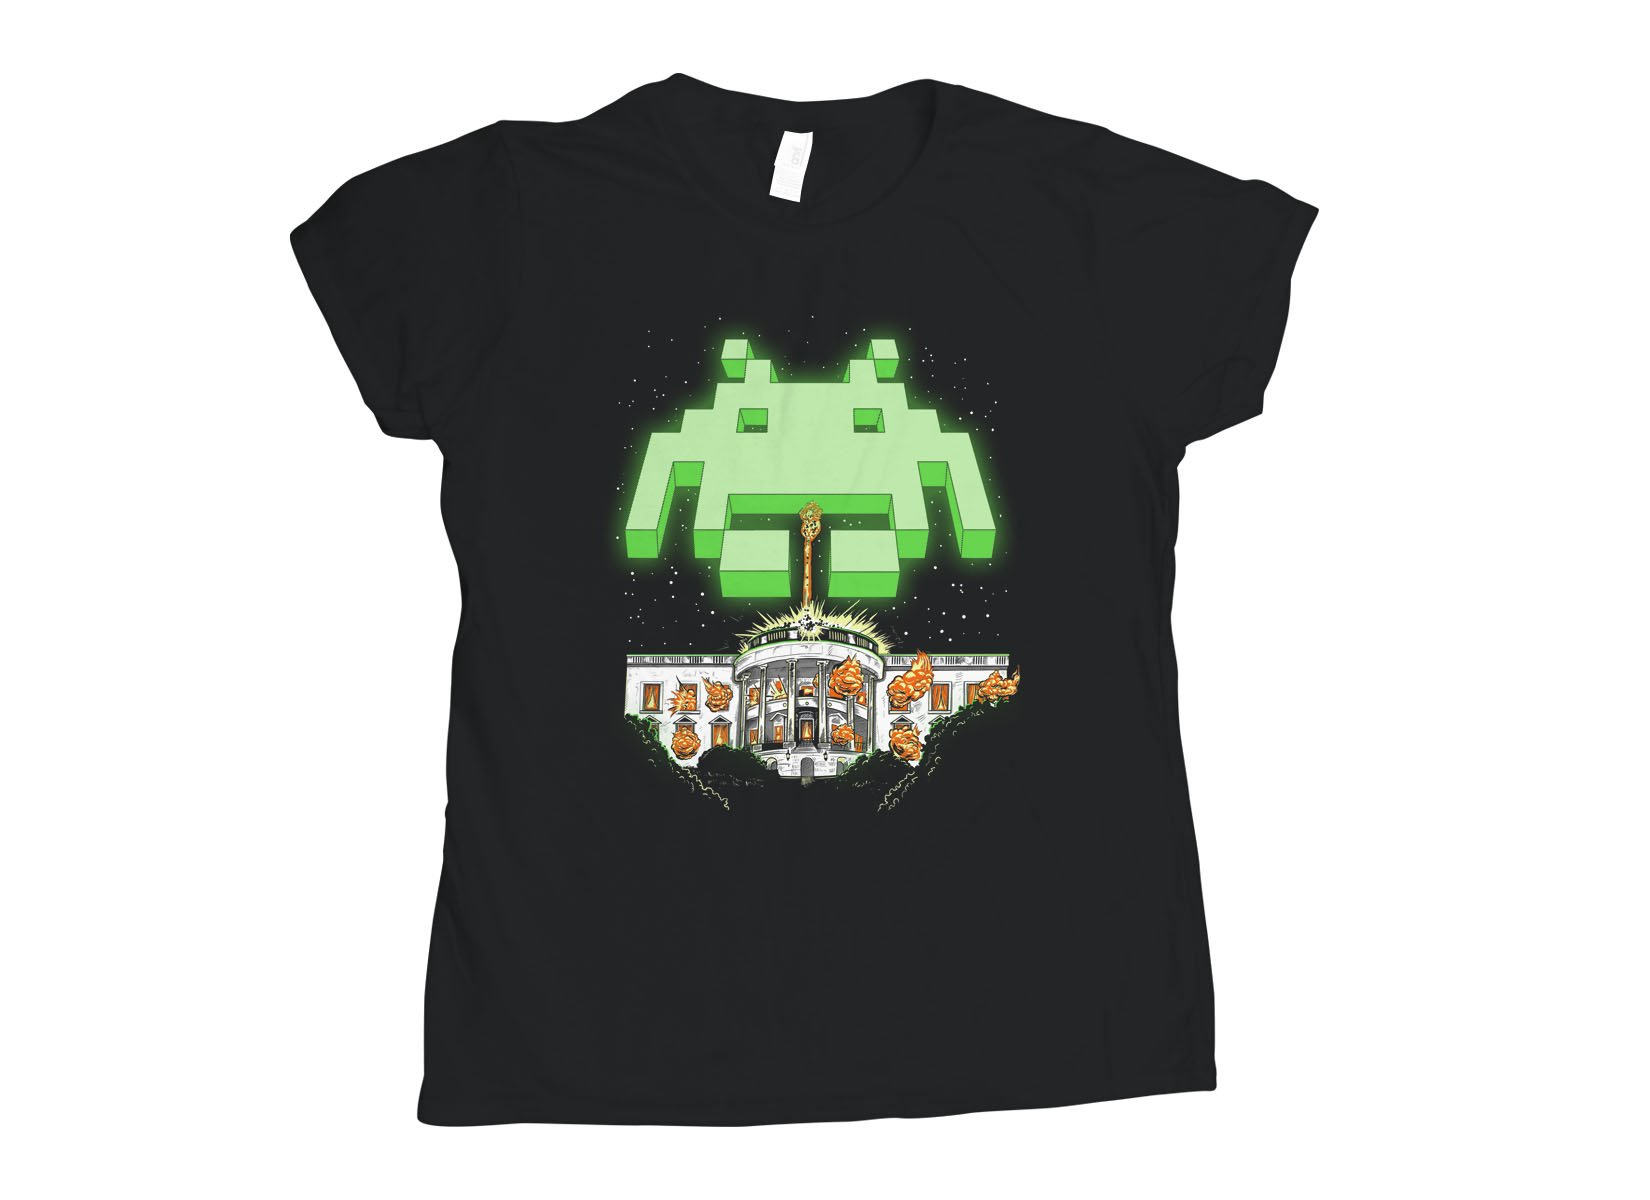 Invader Day on Womens T-Shirt